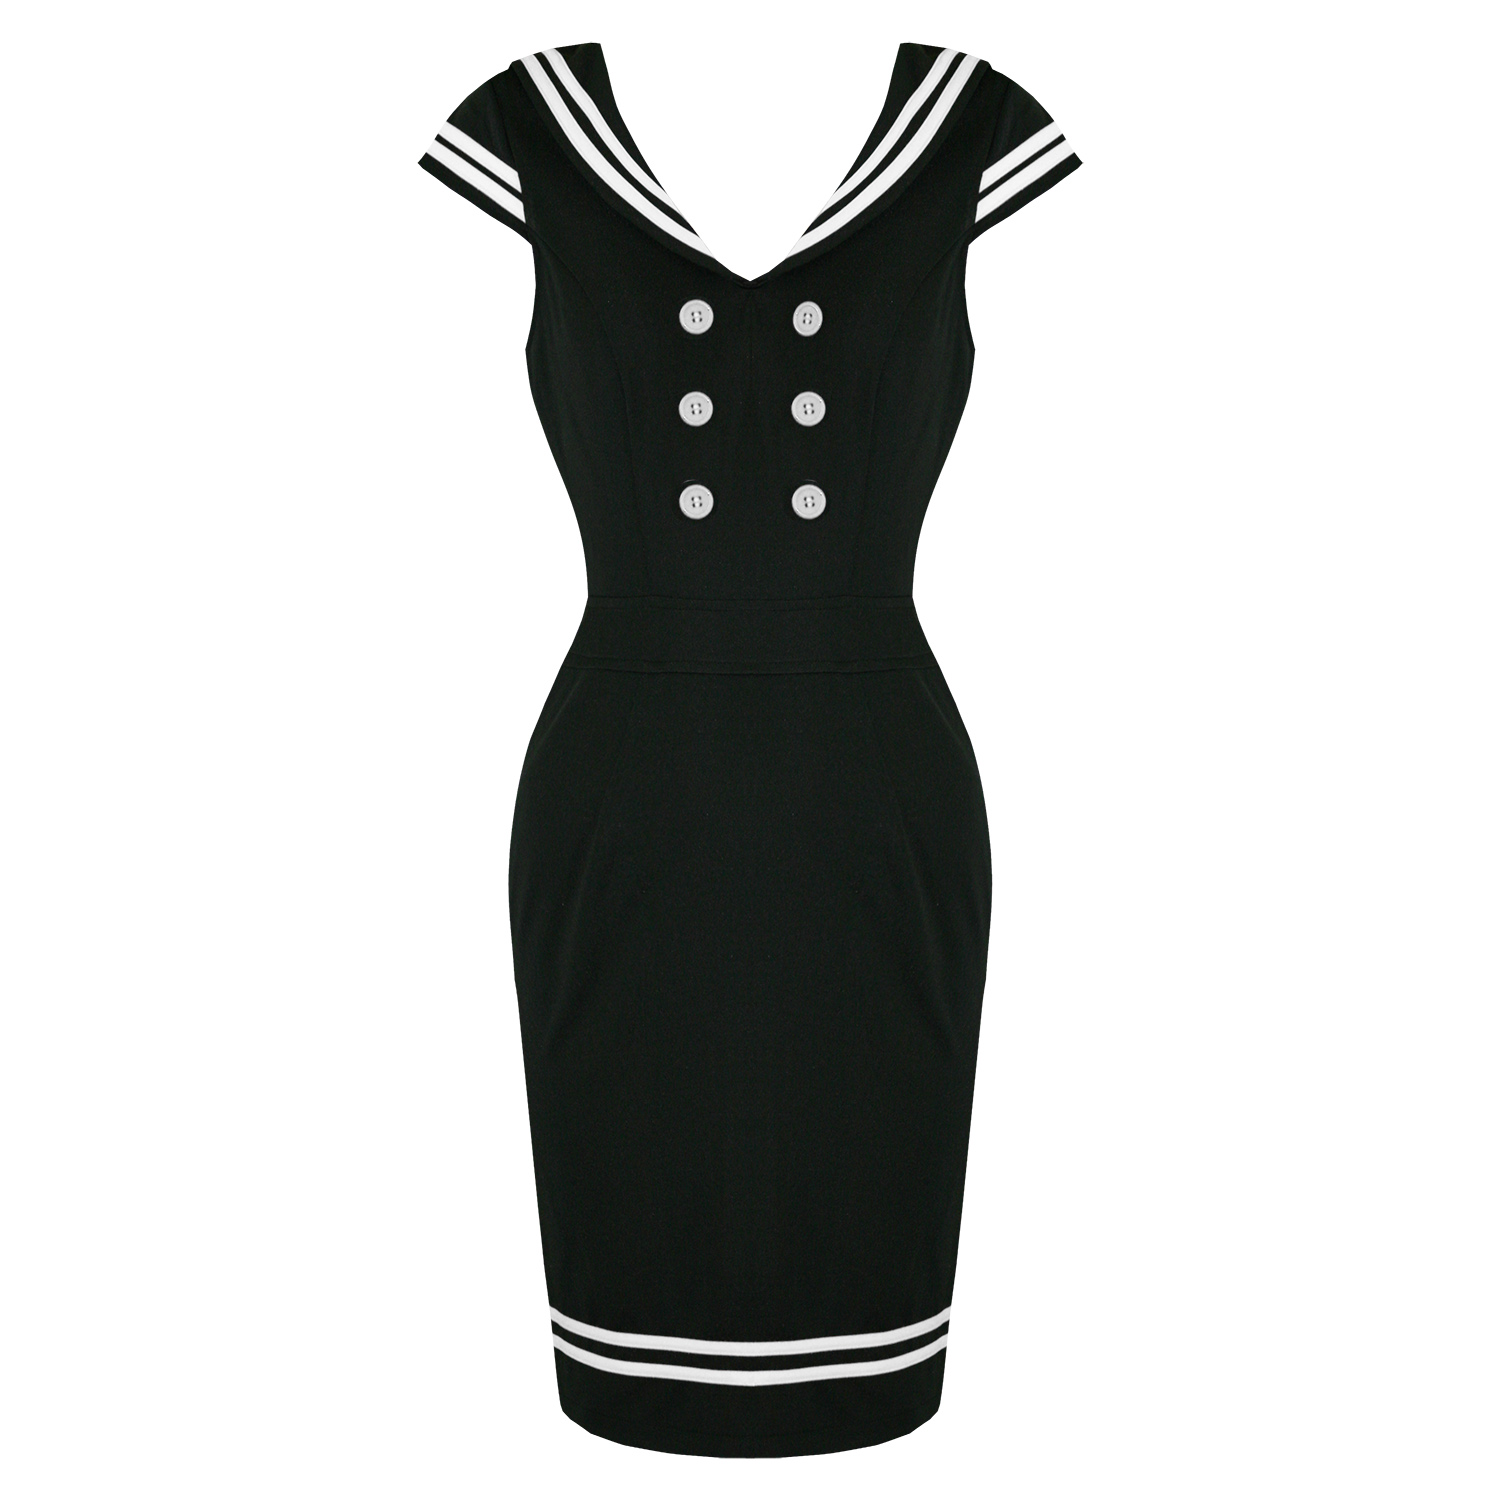 3cf880ee8 Hell Bunny Horizon Black Nautical Sailor Girl Rockabilly Vintage Pencil  Dress